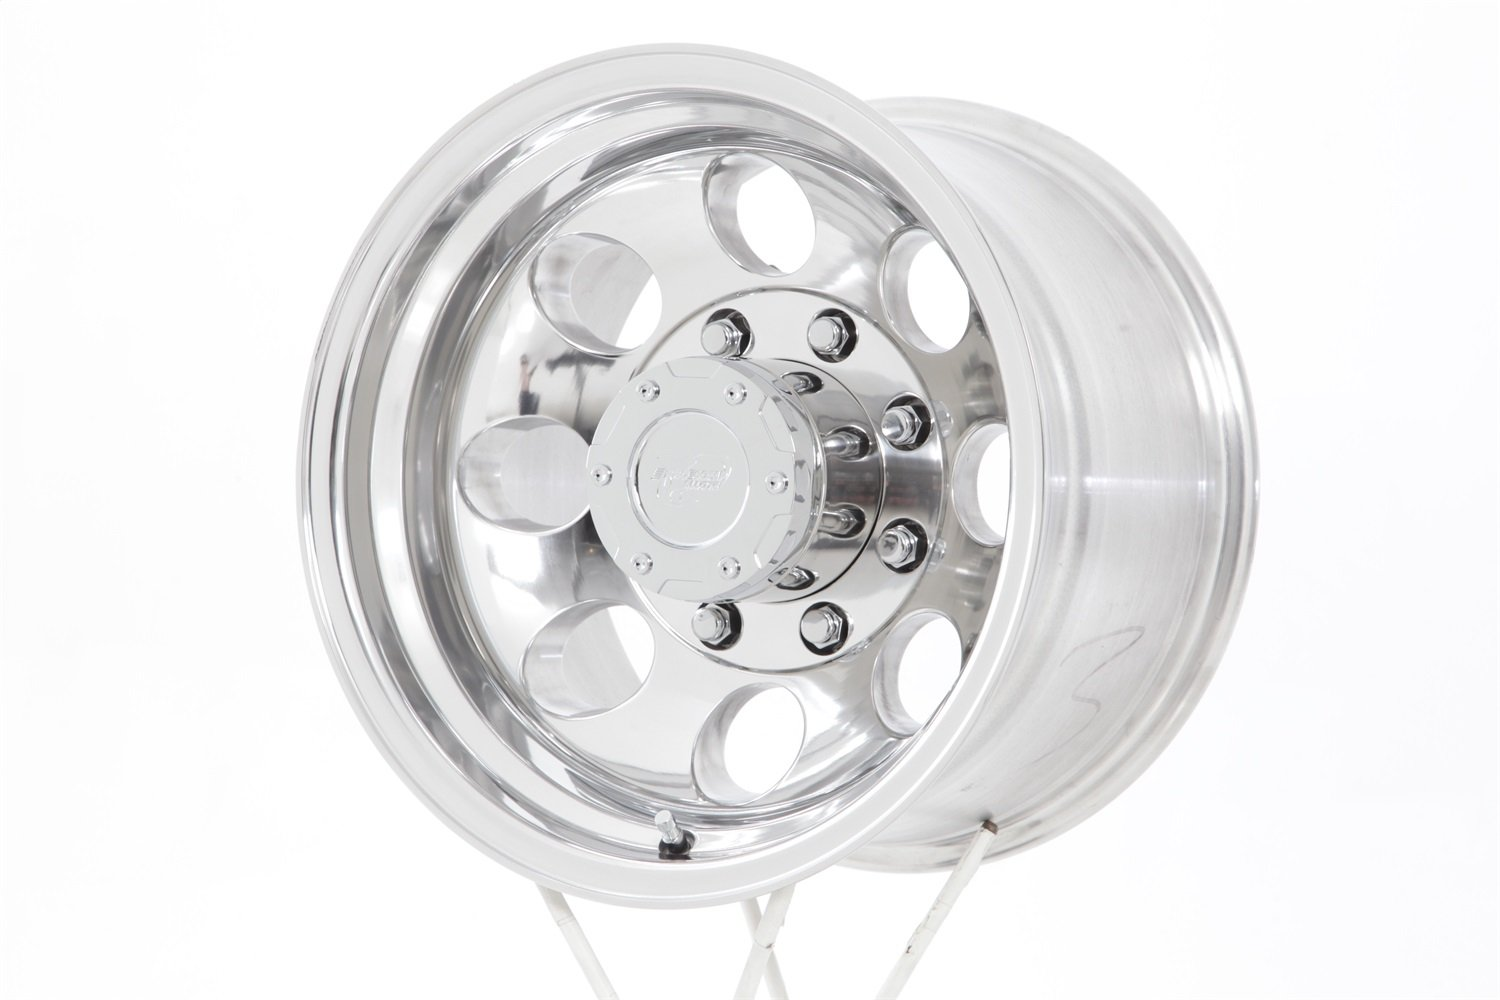 Pro Comp Alloys Series 69 Wheel with Polished Finish (17x9''/8x170mm)